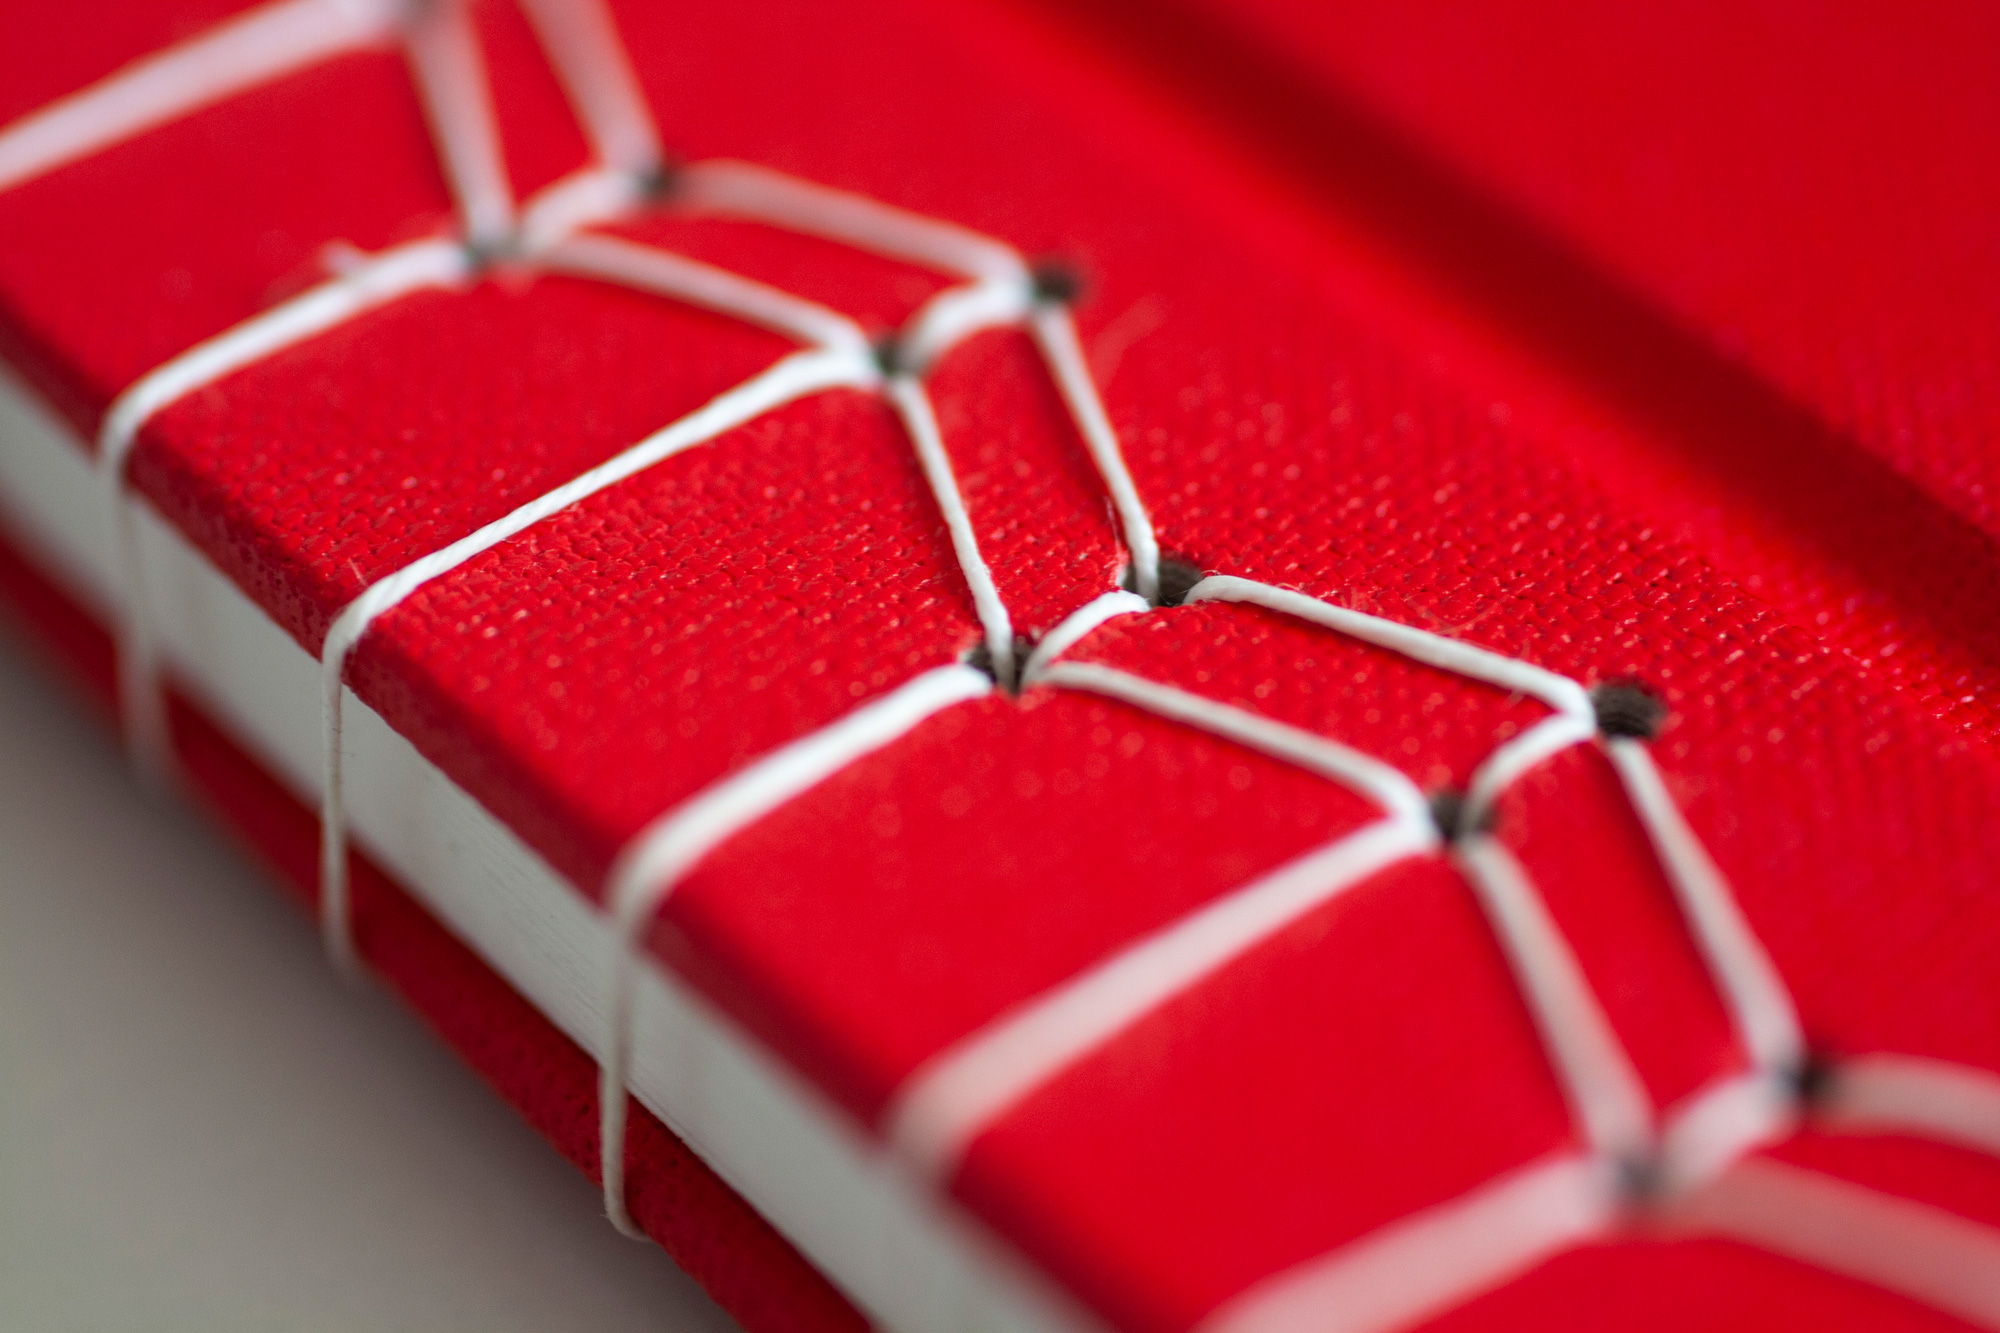 Red Book With White Japanese Stab Stitch Binding, Macro Of The Binding